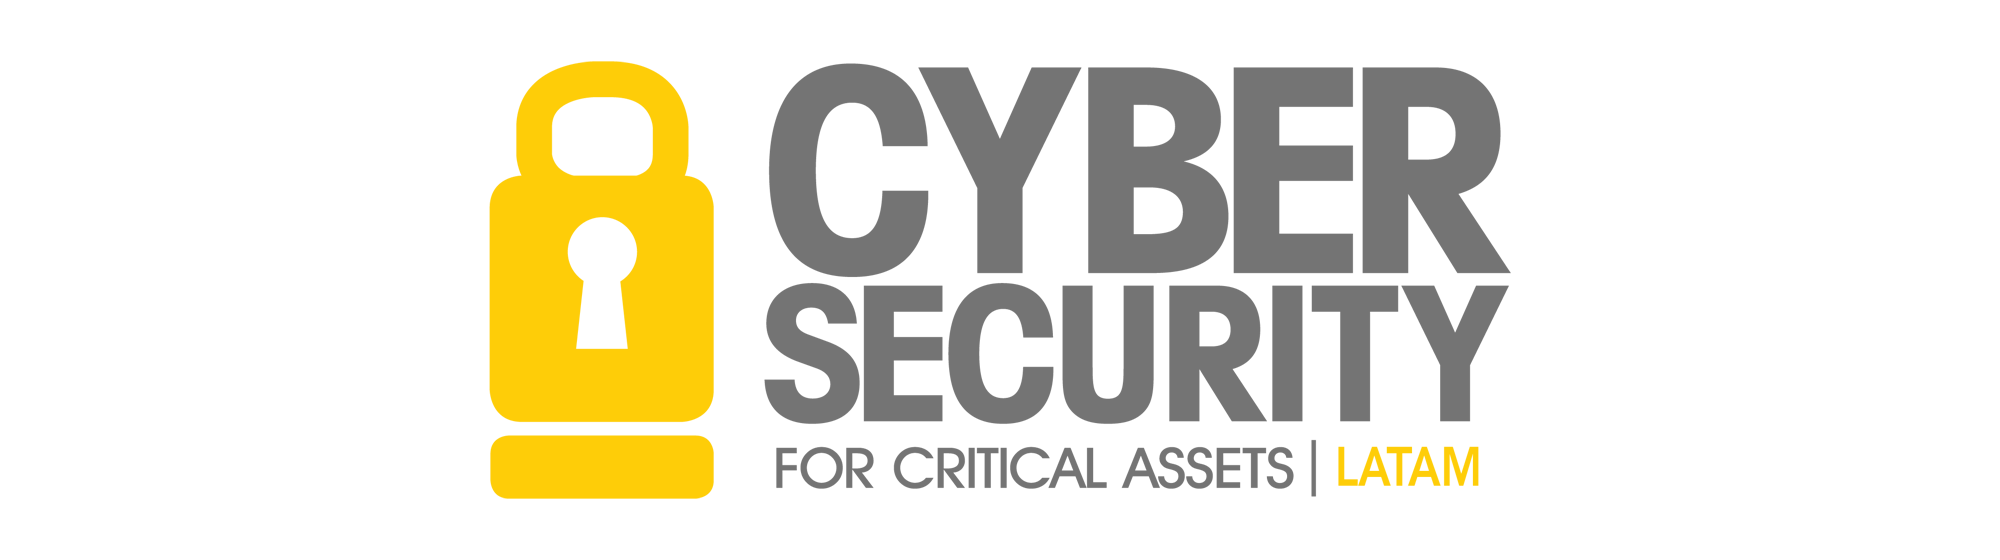 Cyber Security for Critical Assets (CS4CA) LATAM